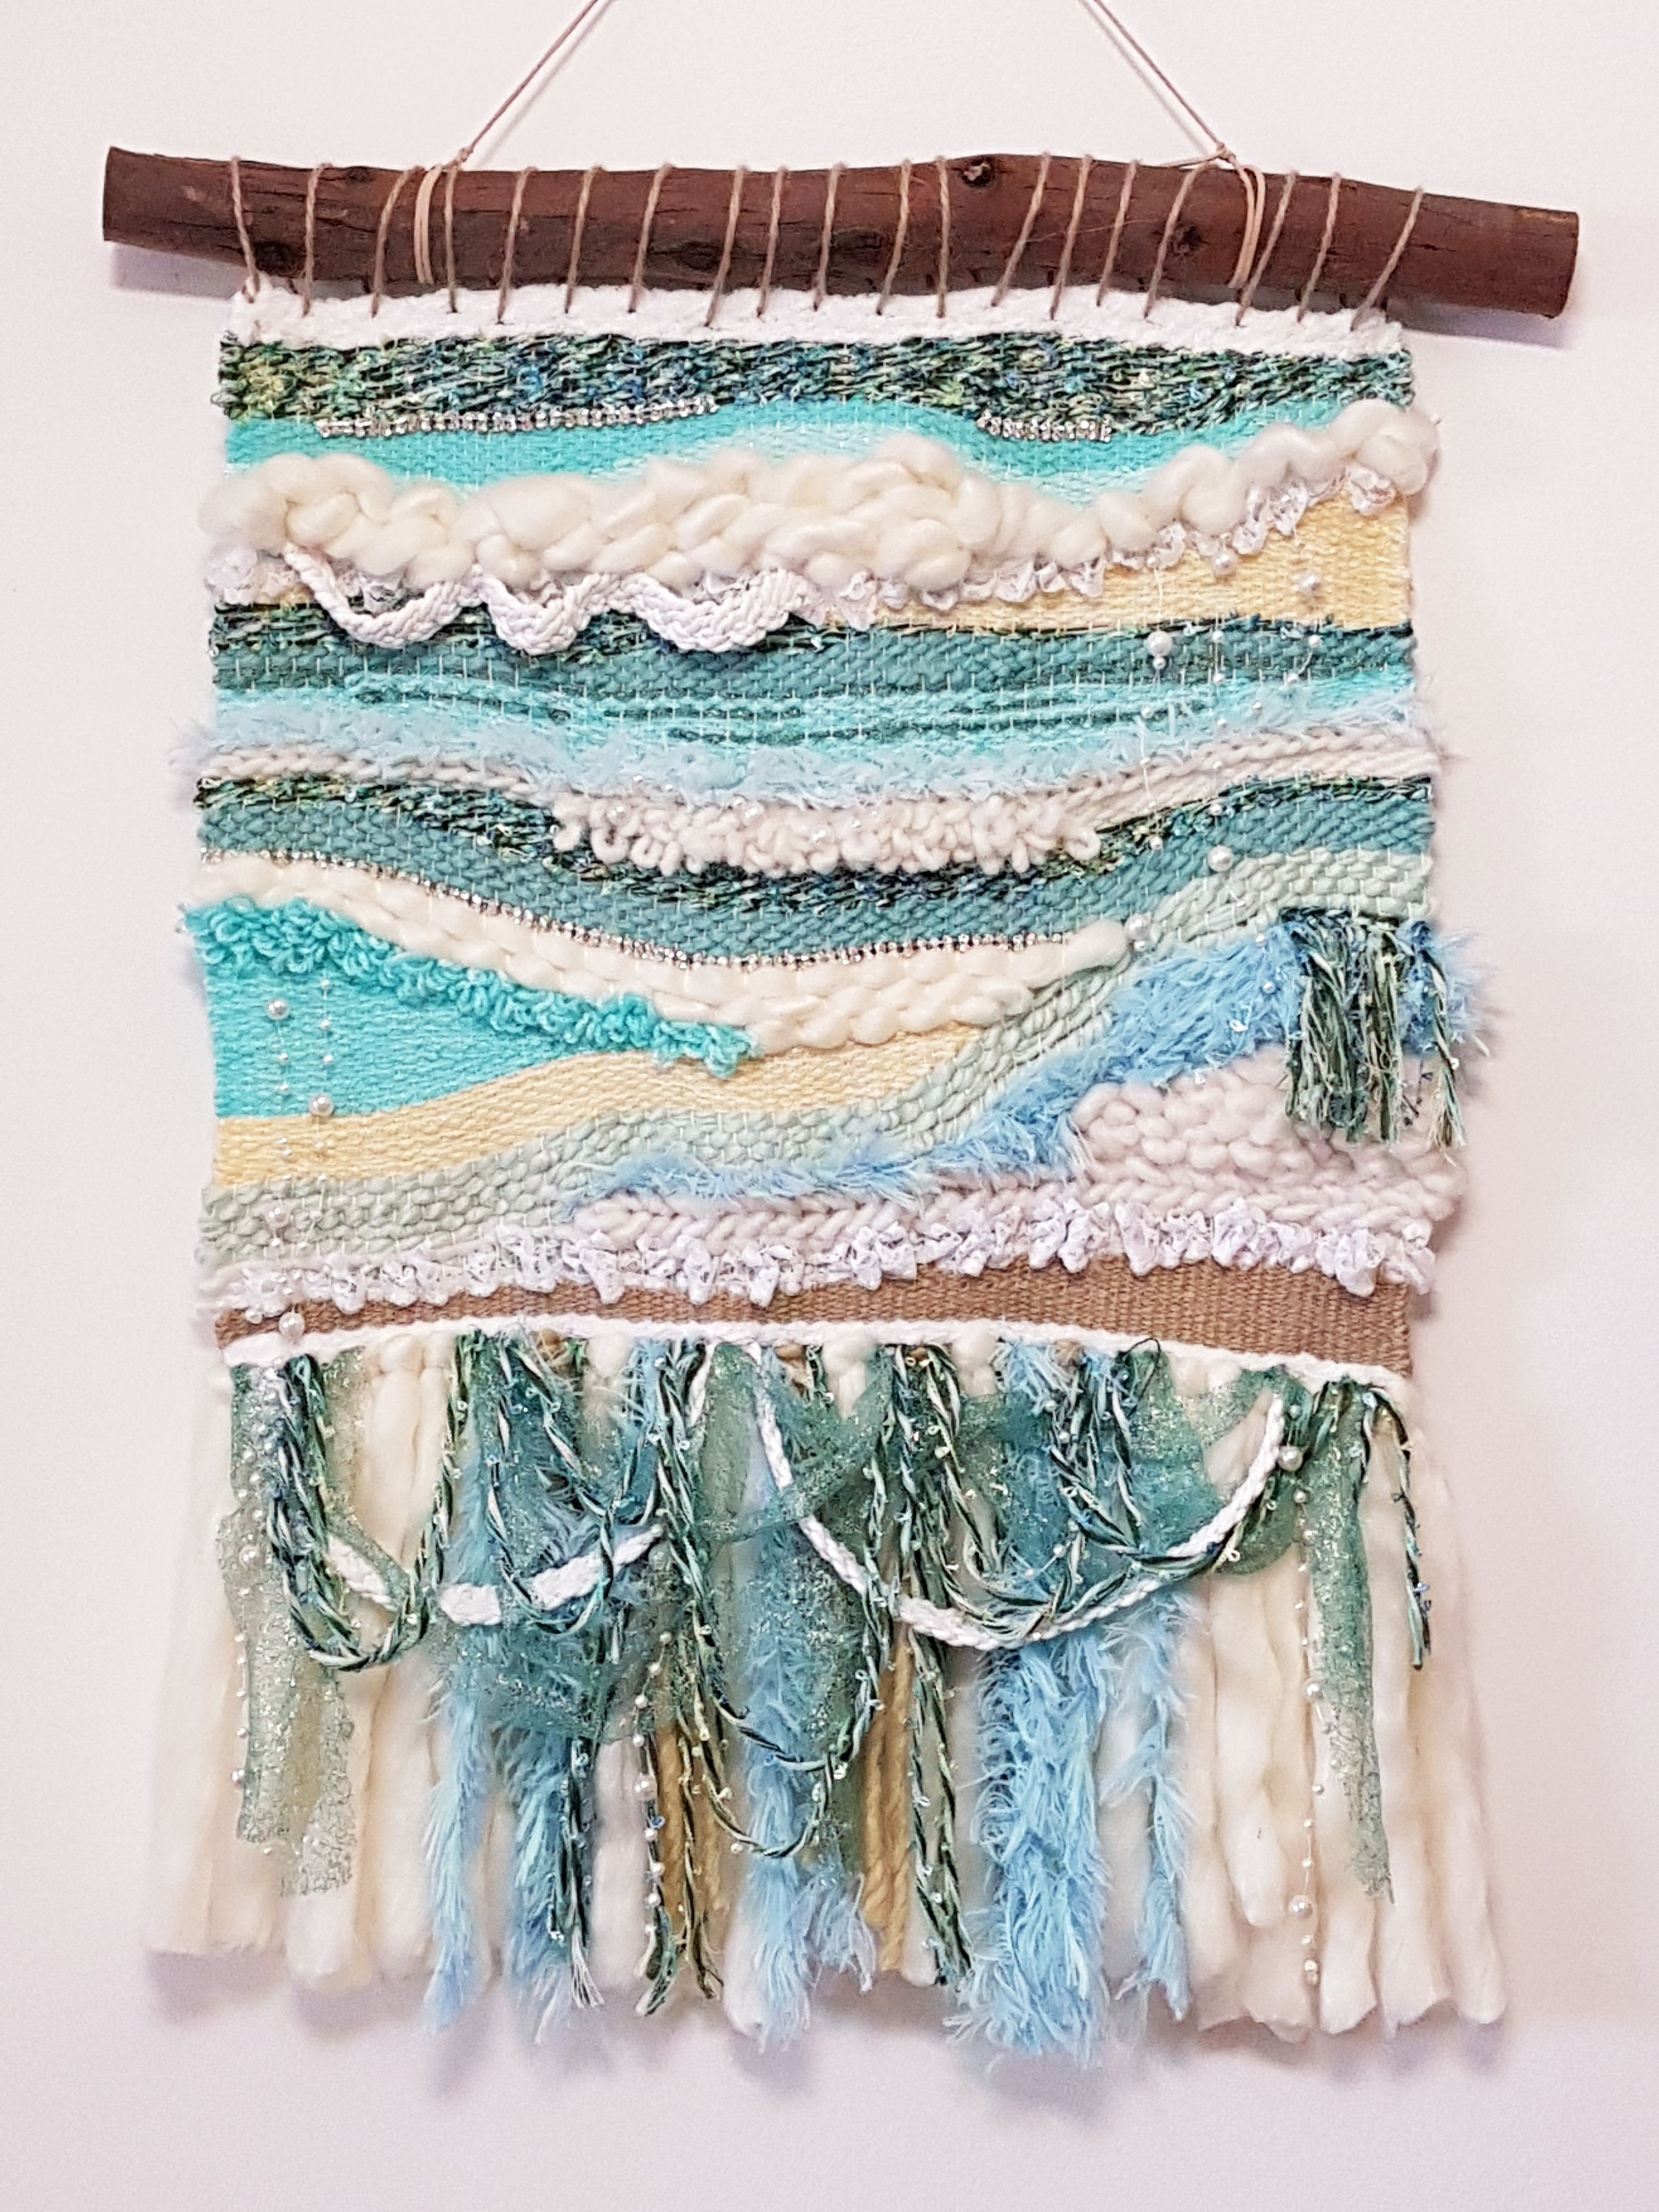 Commissioned By Beach Loving Aussies This Woven Wall Hanging Is Called The Waves And Matches Their Sea Th Woven Wall Hanging Yarn Wall Hanging Yarn Wall Art